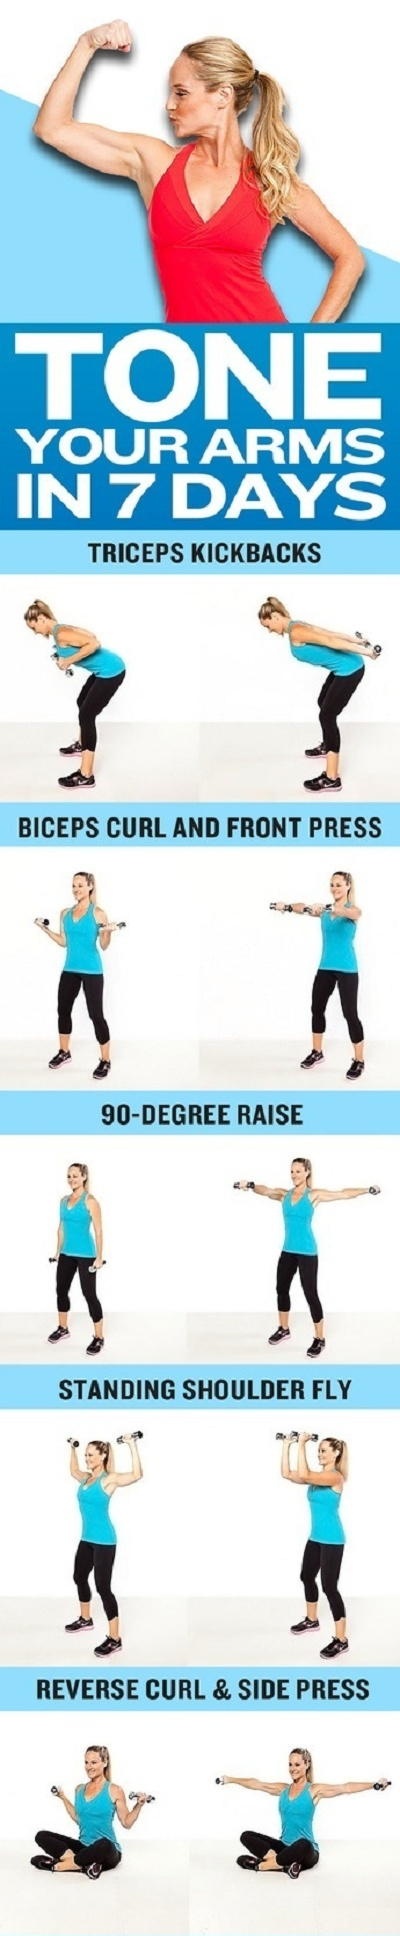 Tone up your arms in 7 days!